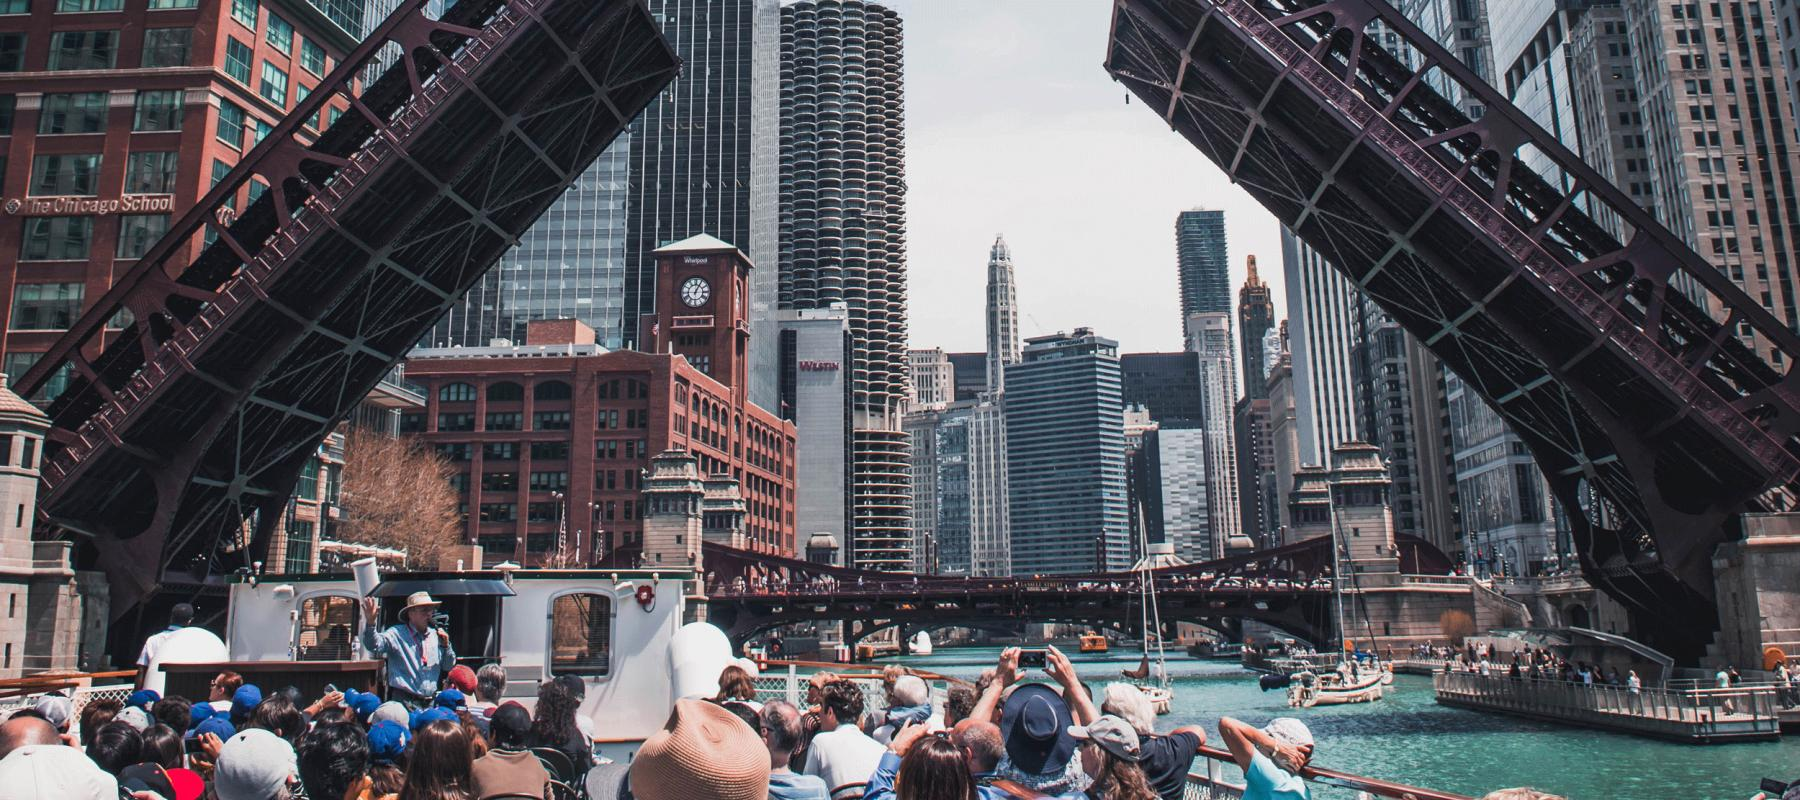 Best Architectural River Cruise Chicago River Cruise Architecture Tour Chicago